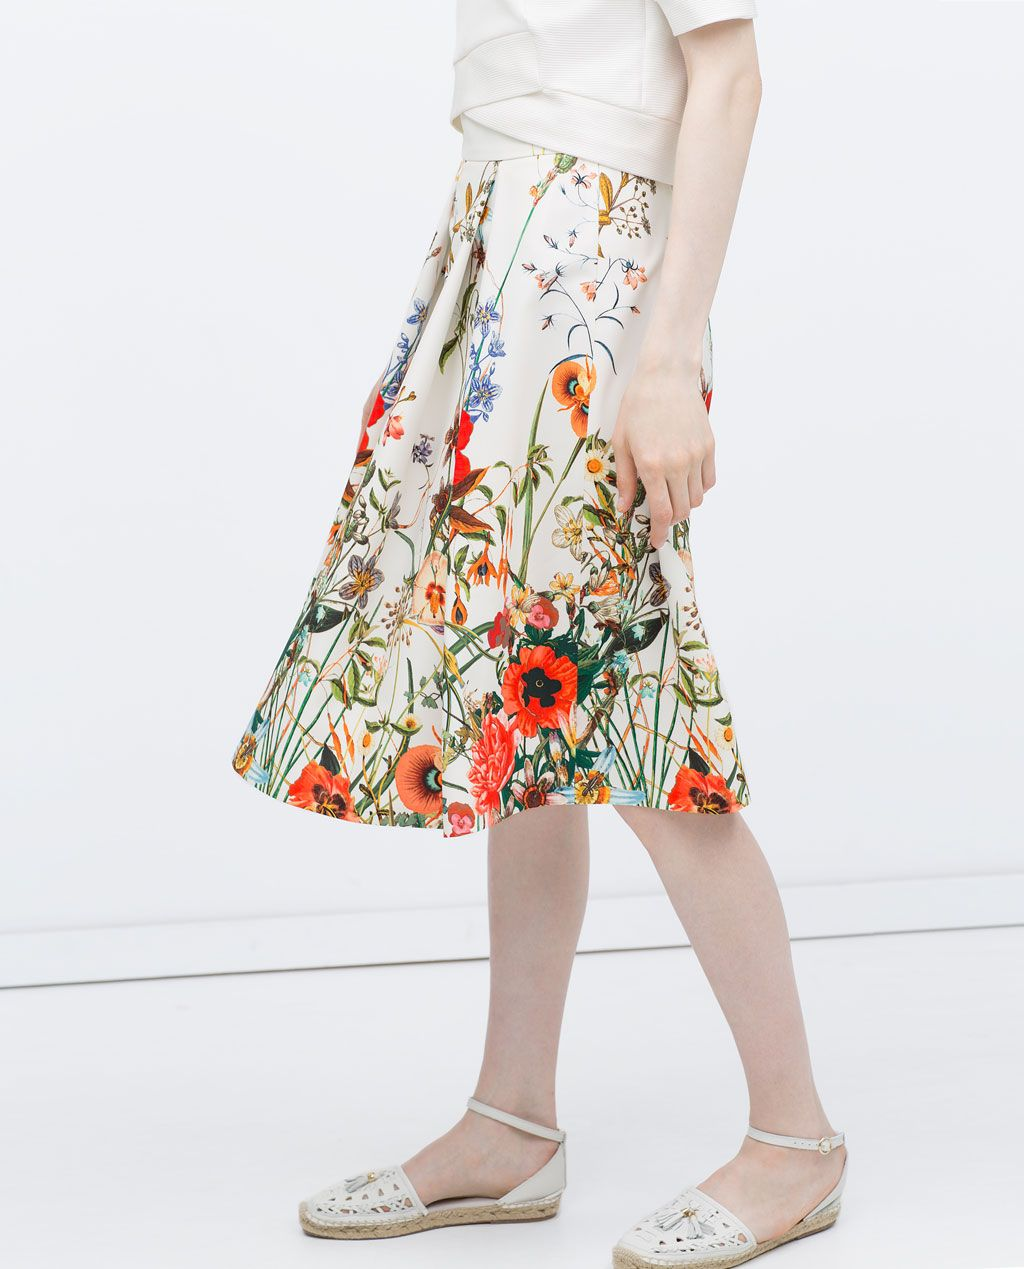 722c6104 Image 3 of PRINTED SKIRT WITH PLEATS from Zara   ON MY PERSON ...